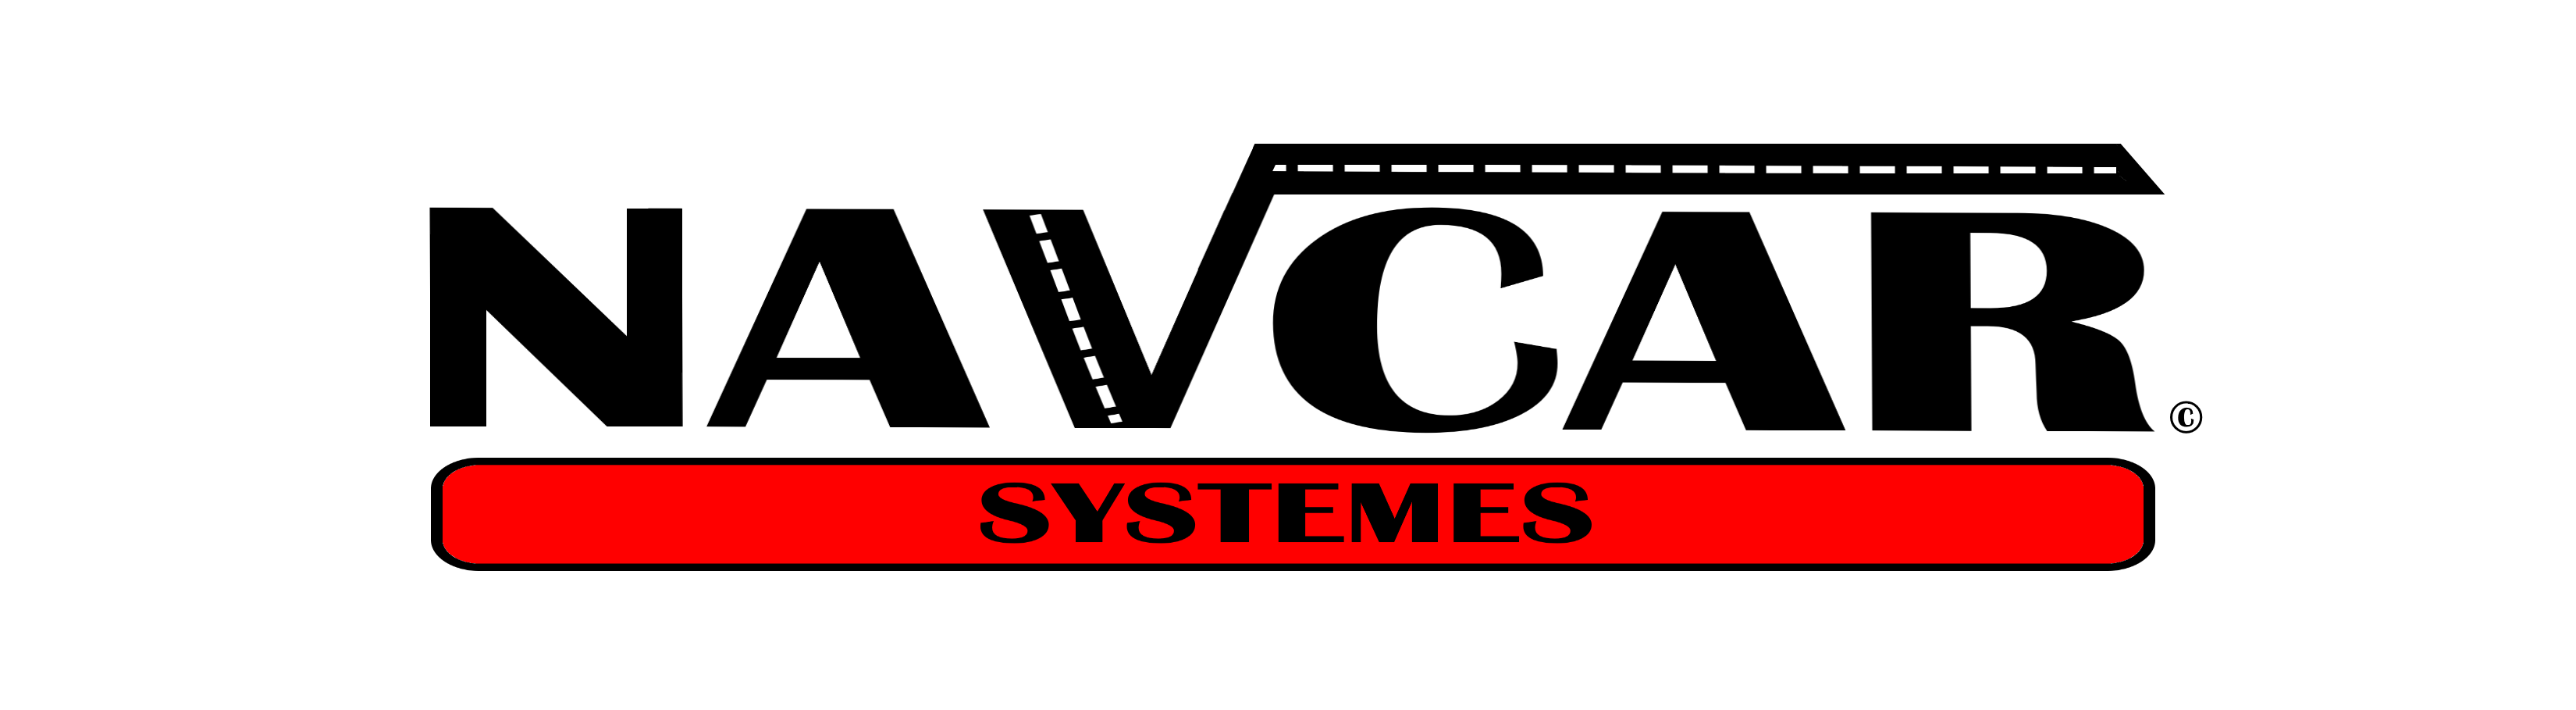 Navcarsystemes